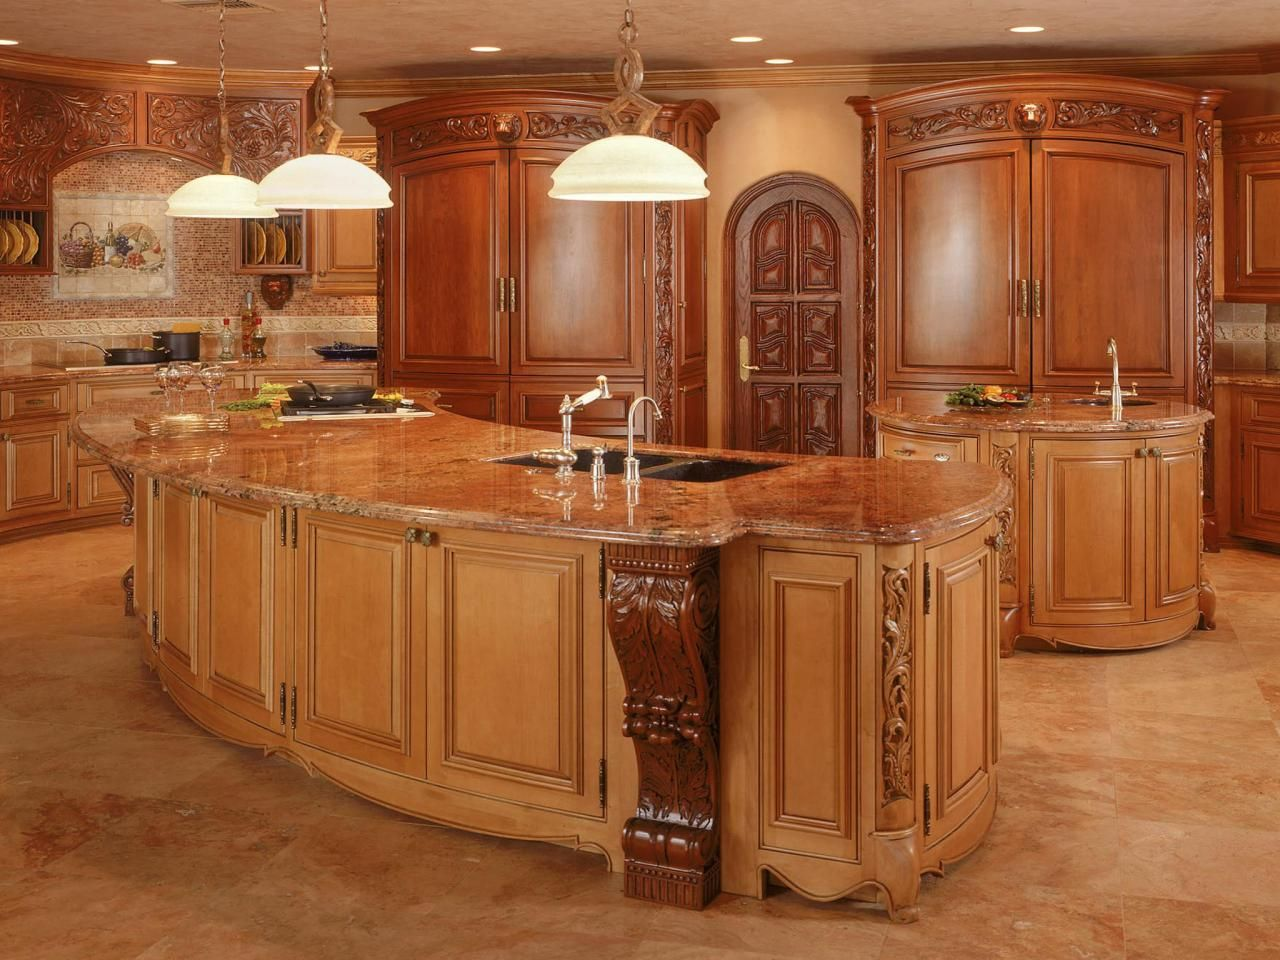 Victorian Kitchen Furniture  Cool Furniture Ideas Check More At Classy Modern Victorian Kitchen Design Review